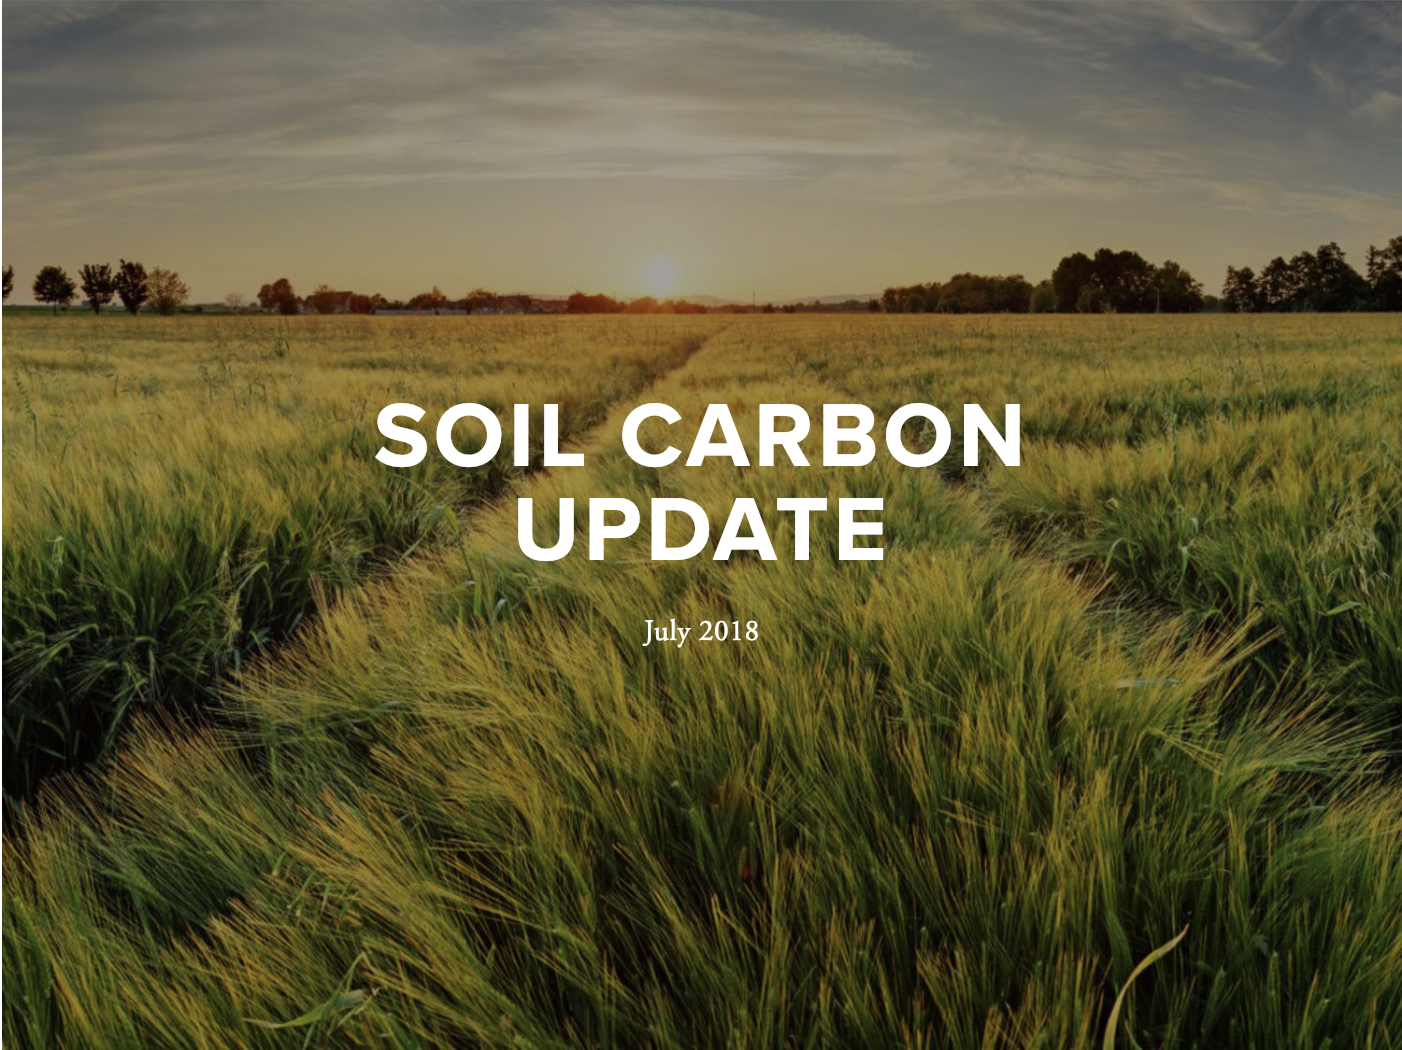 July 2018 Update - This update includes features on policies, practices, science, adaptation and agriculture, funding, workshops, conferences, and internships